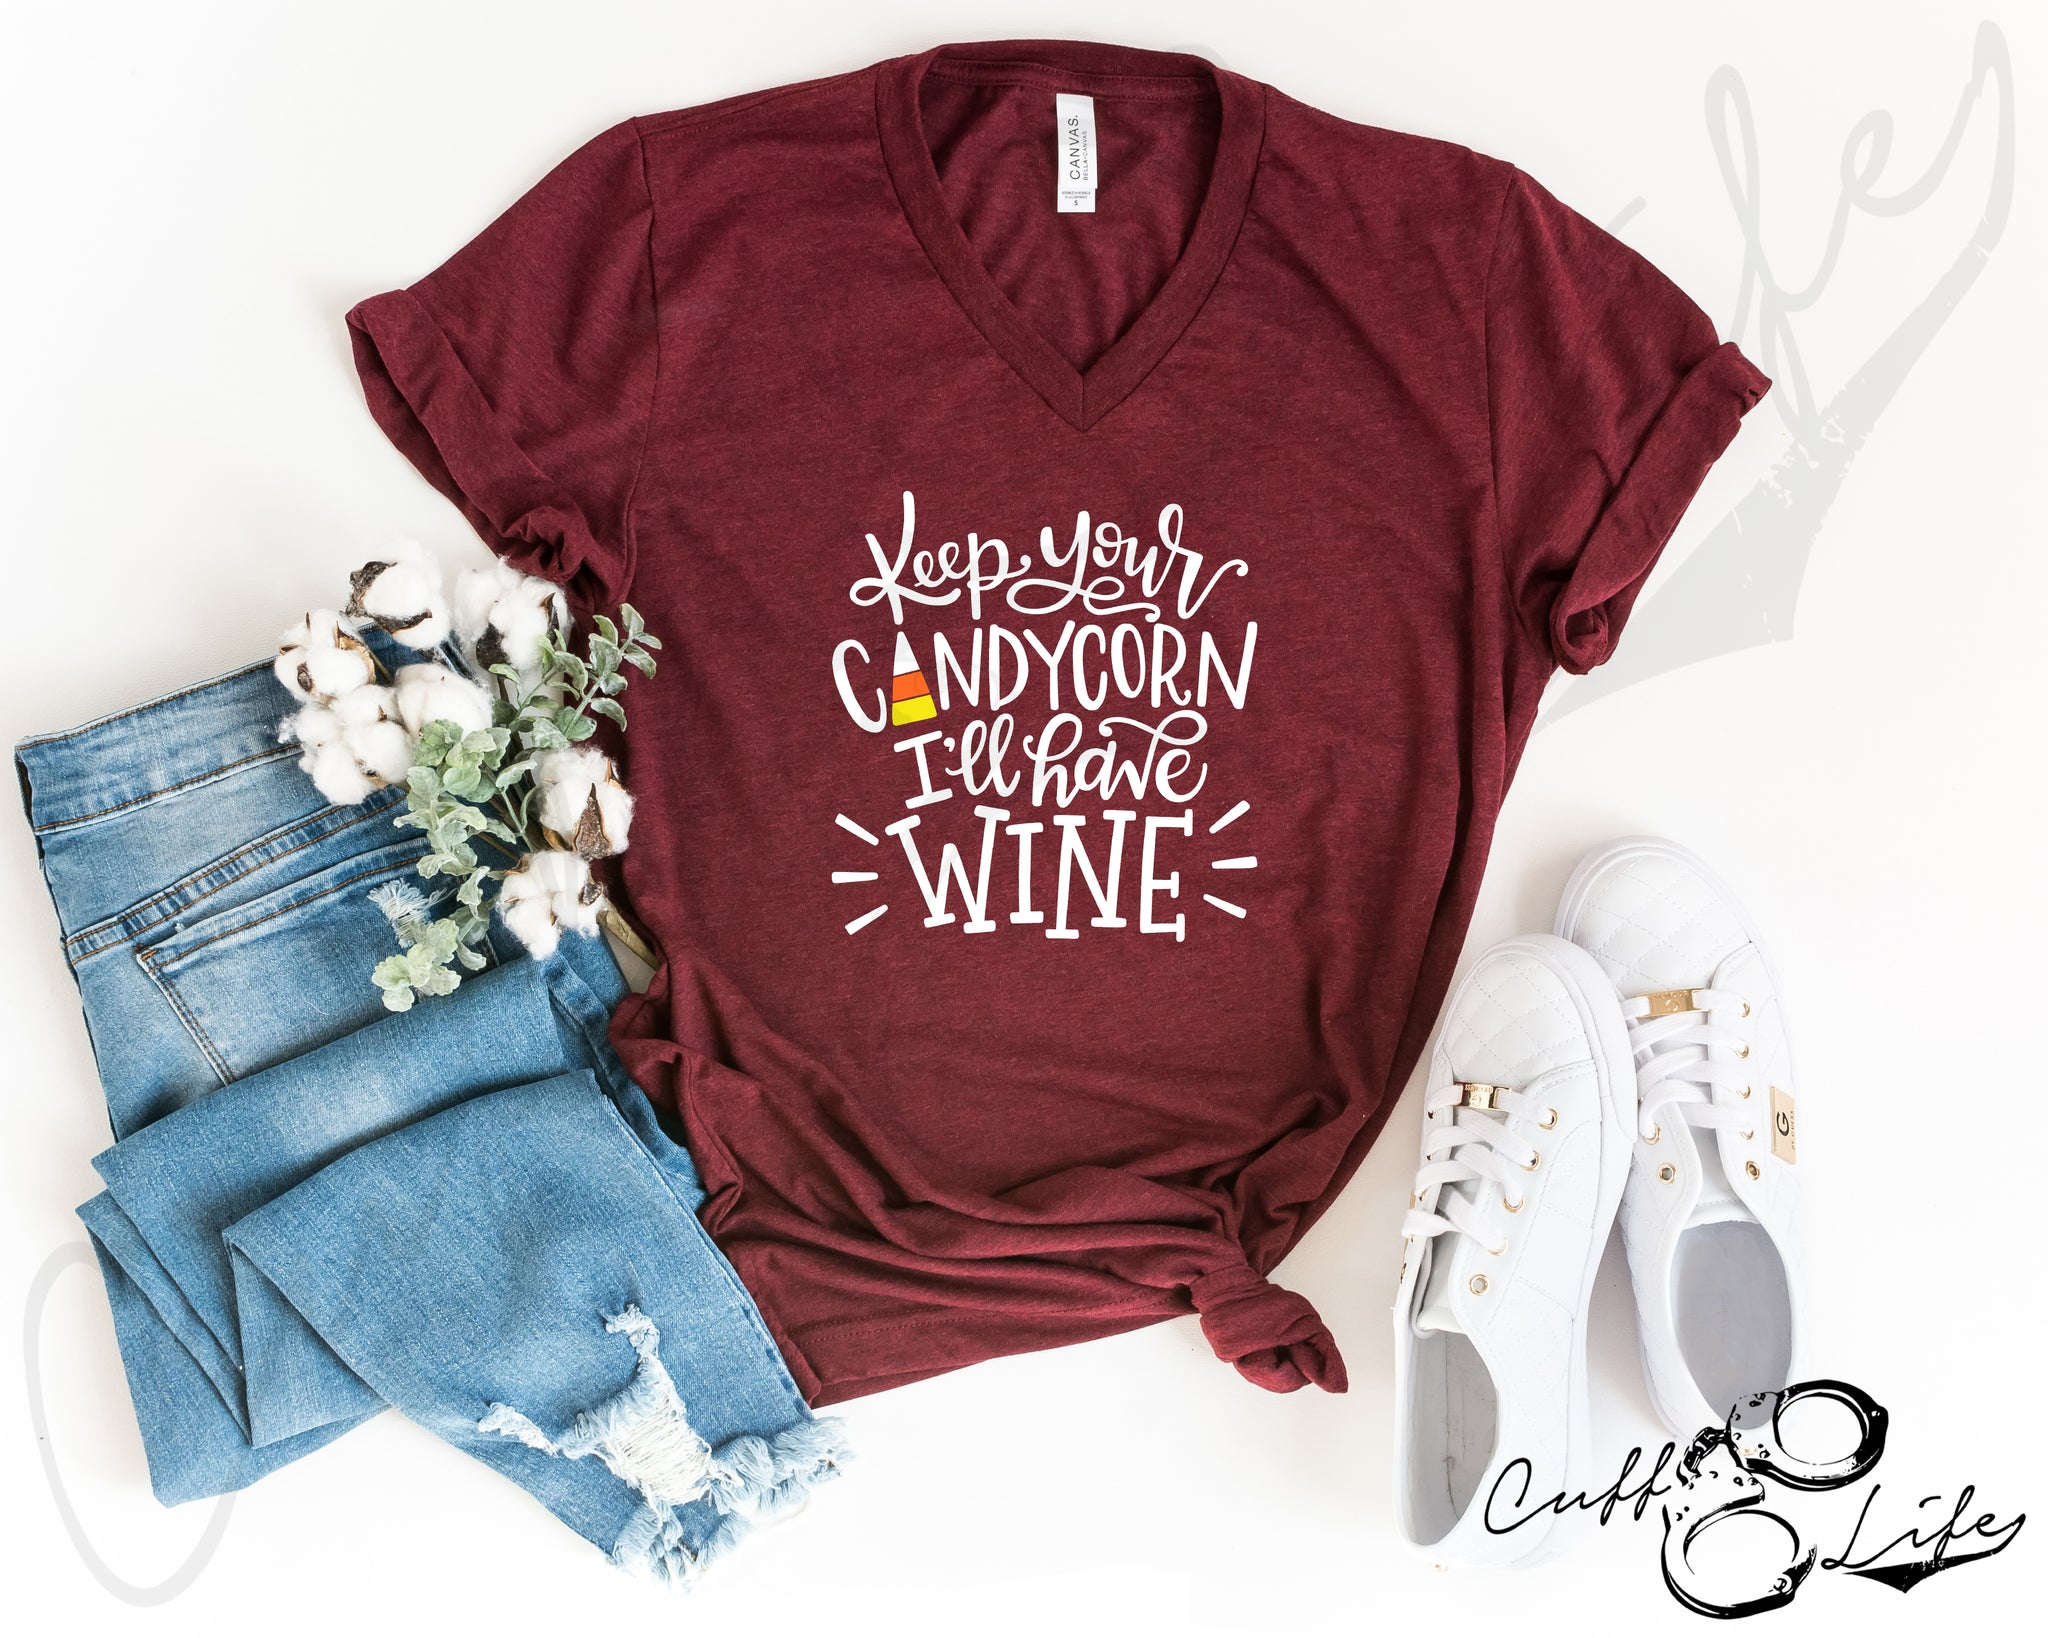 Keep Your Candy Corn, I'll Have Wine - Boyfriend Fit V-Neck Tee